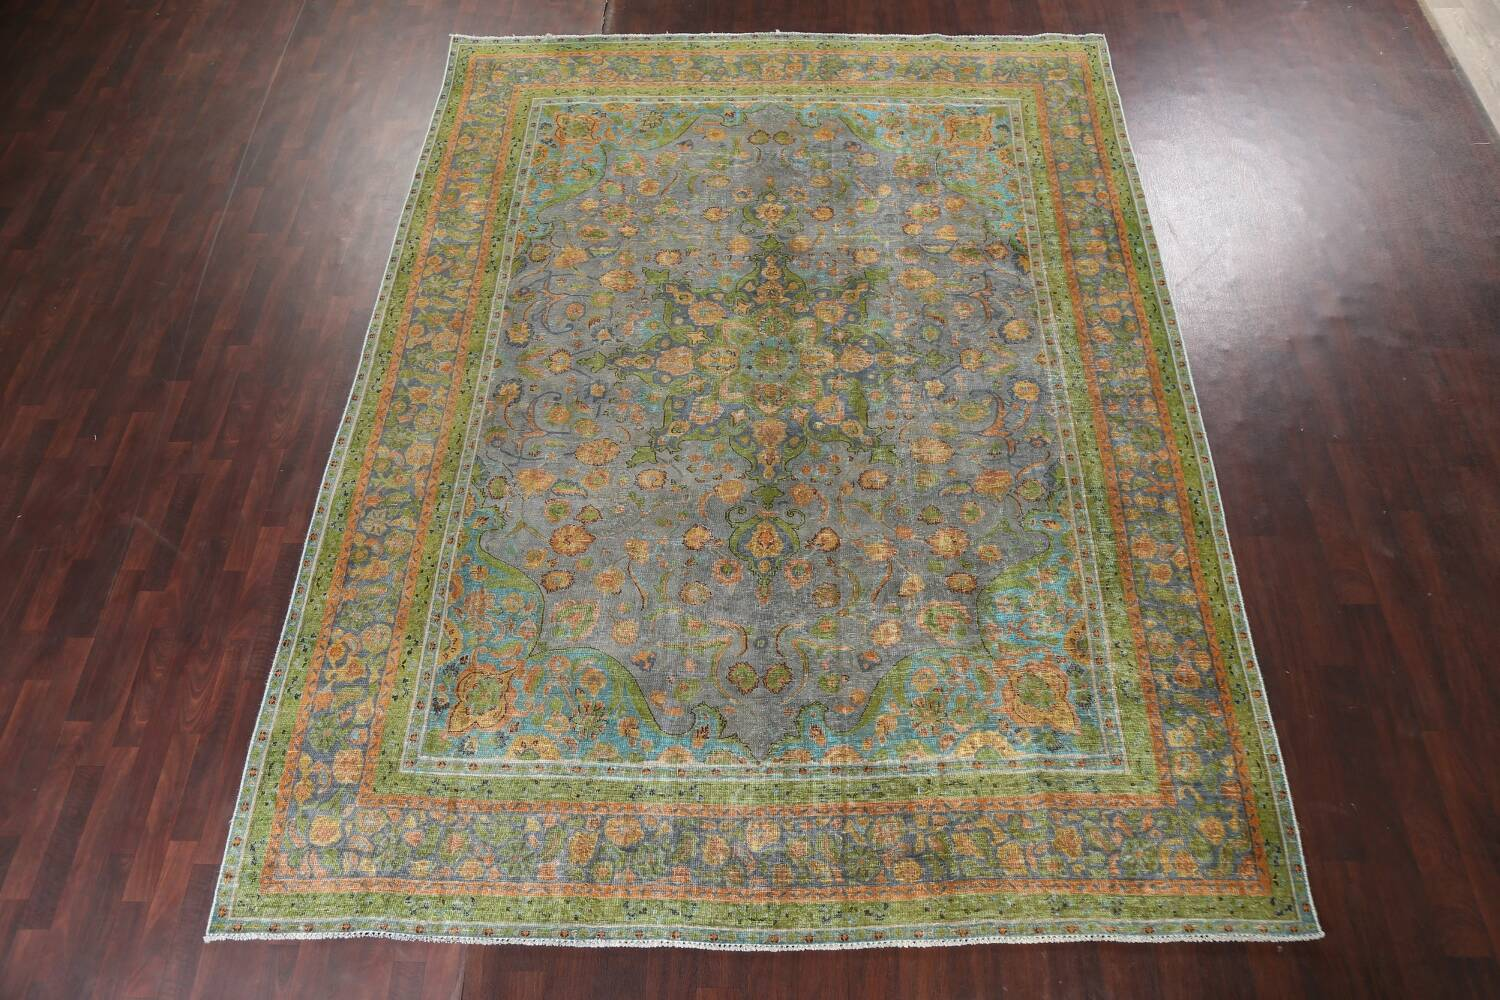 Antique Distressed Over-Dye Tabriz Persian Area Rug 9x12 image 16